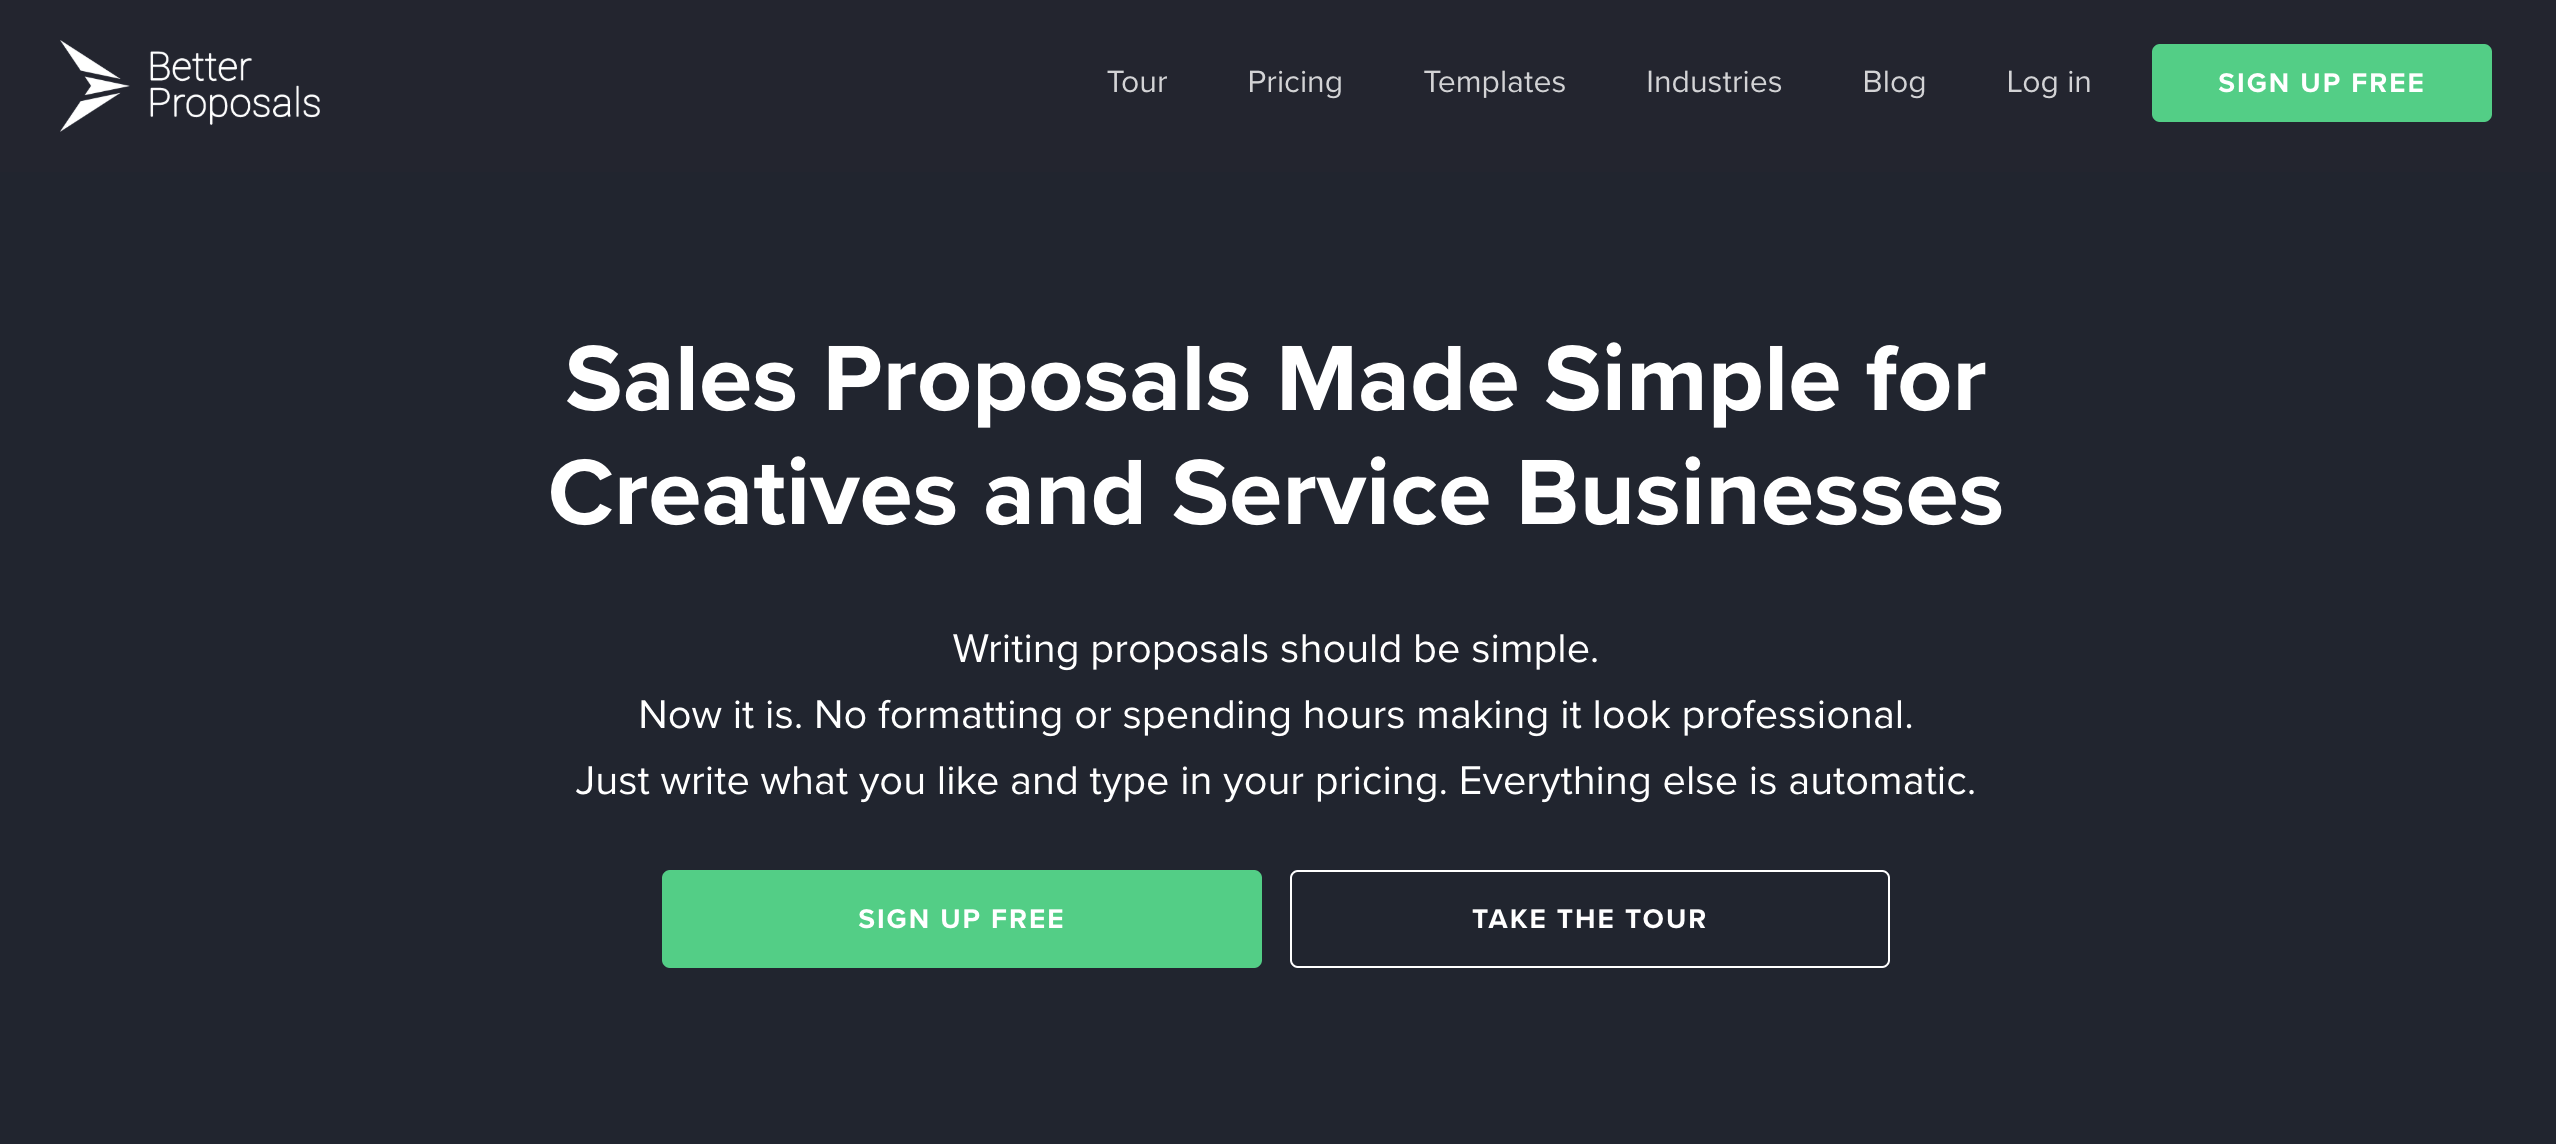 Better Proposals homepage screenshot